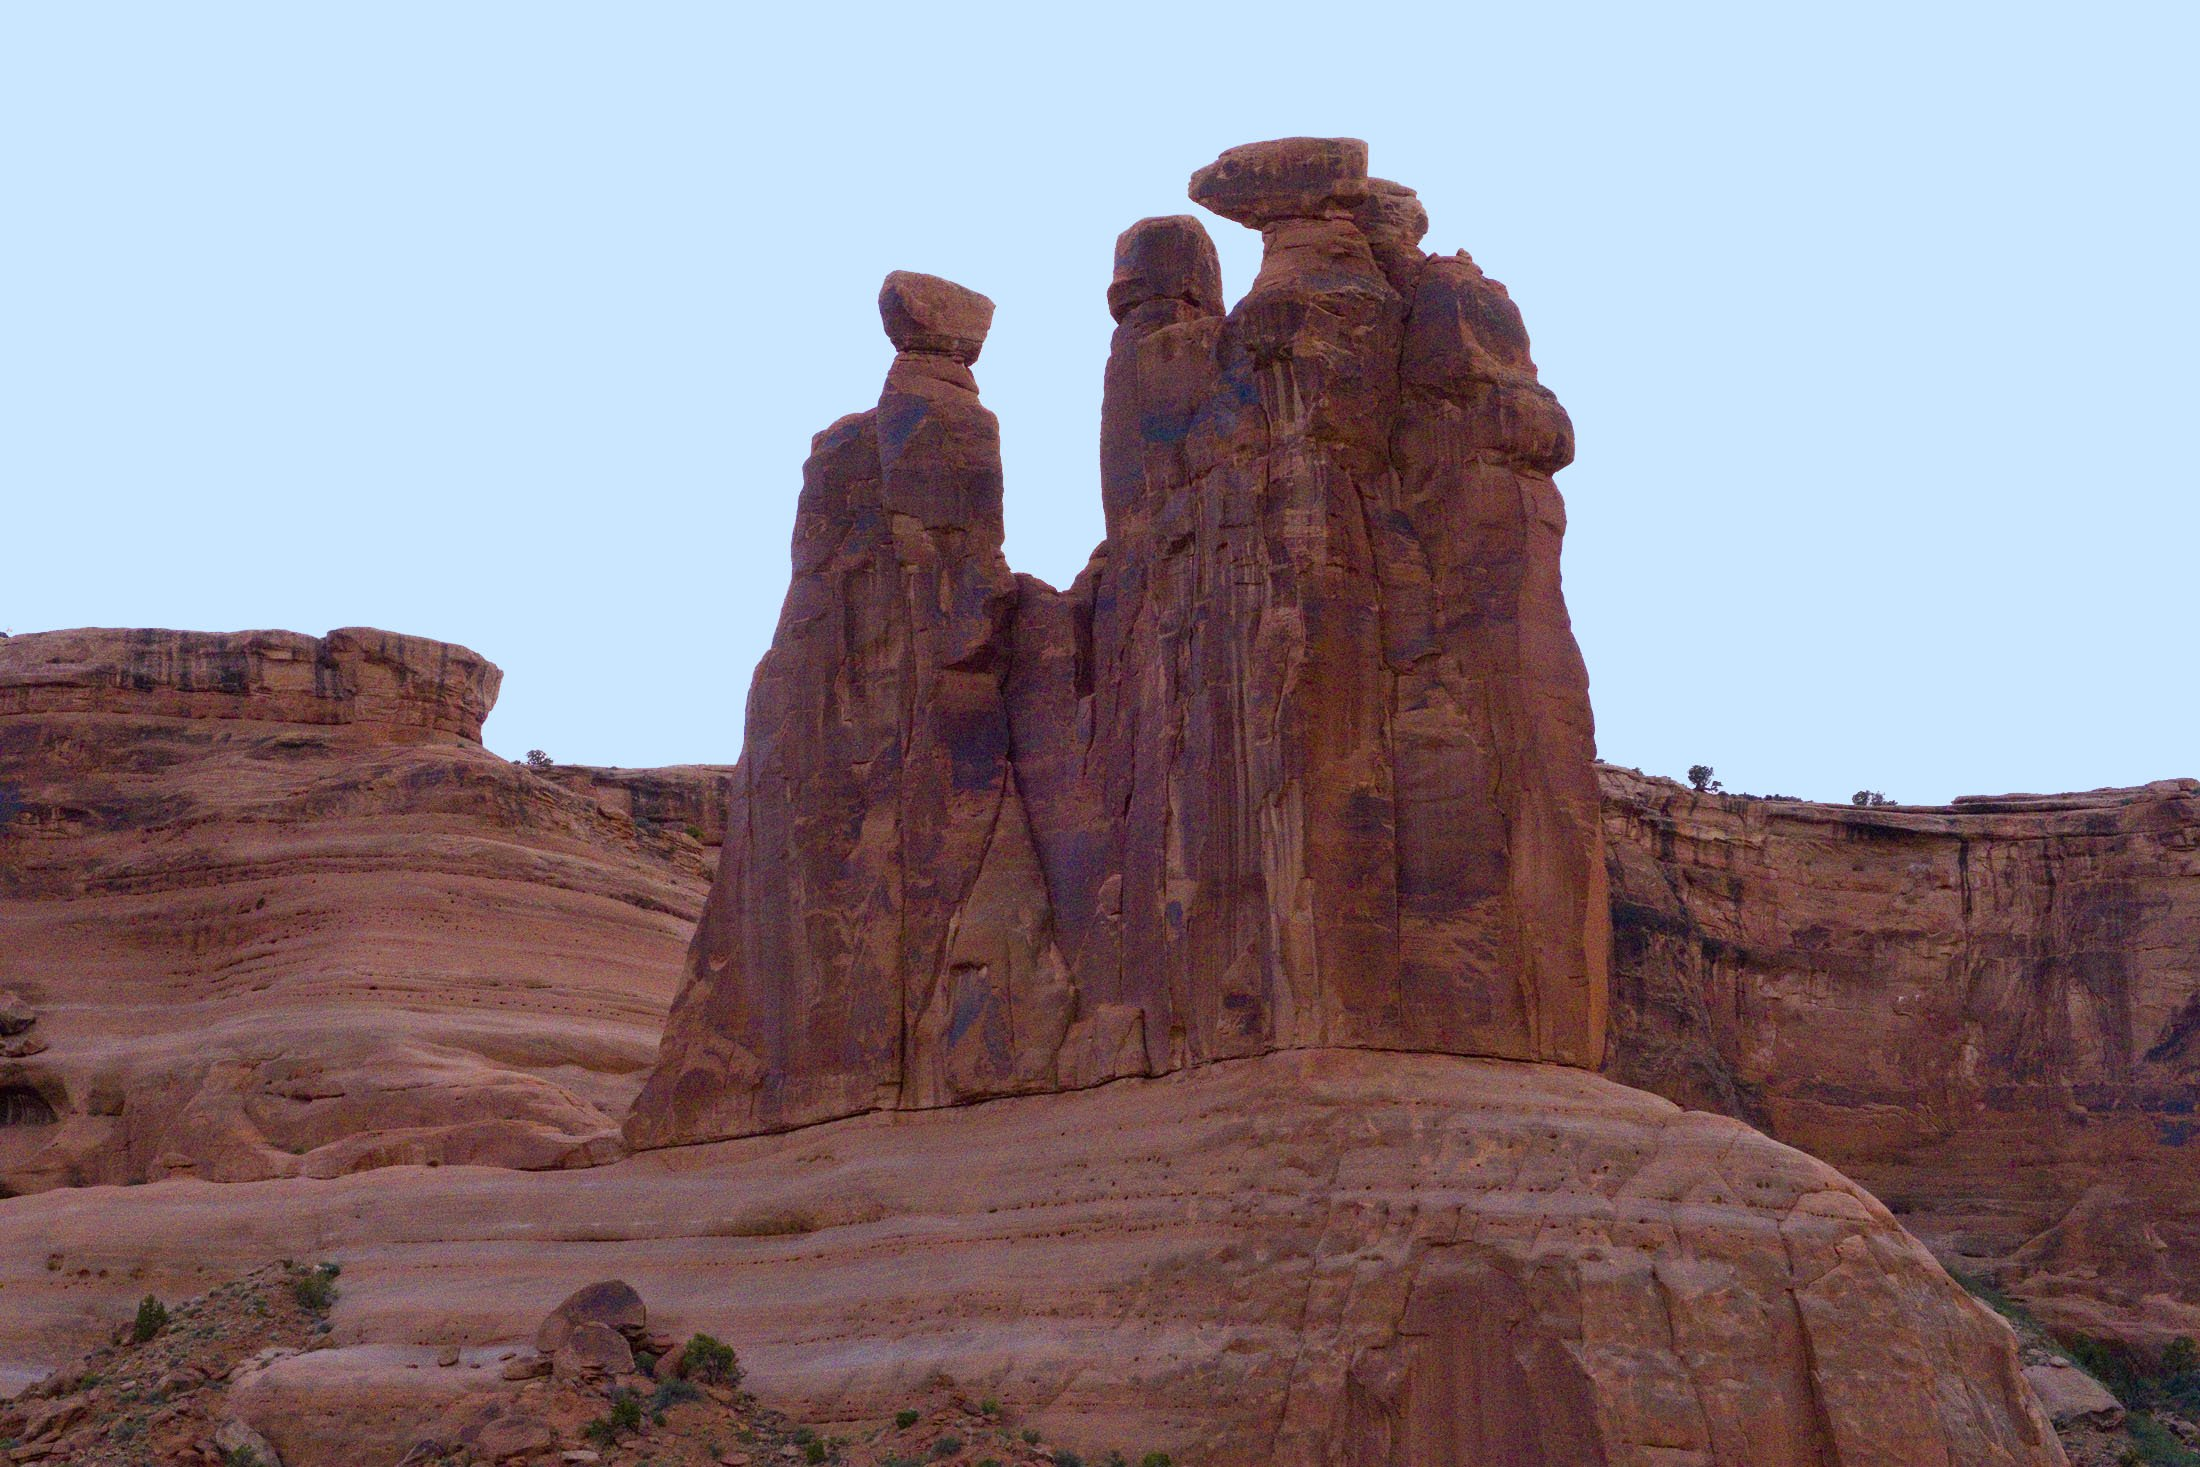 The Three Gossips is among the unique formations that have been given names at Arches National Park. (Craig Davis/Craigslegztravels.com)